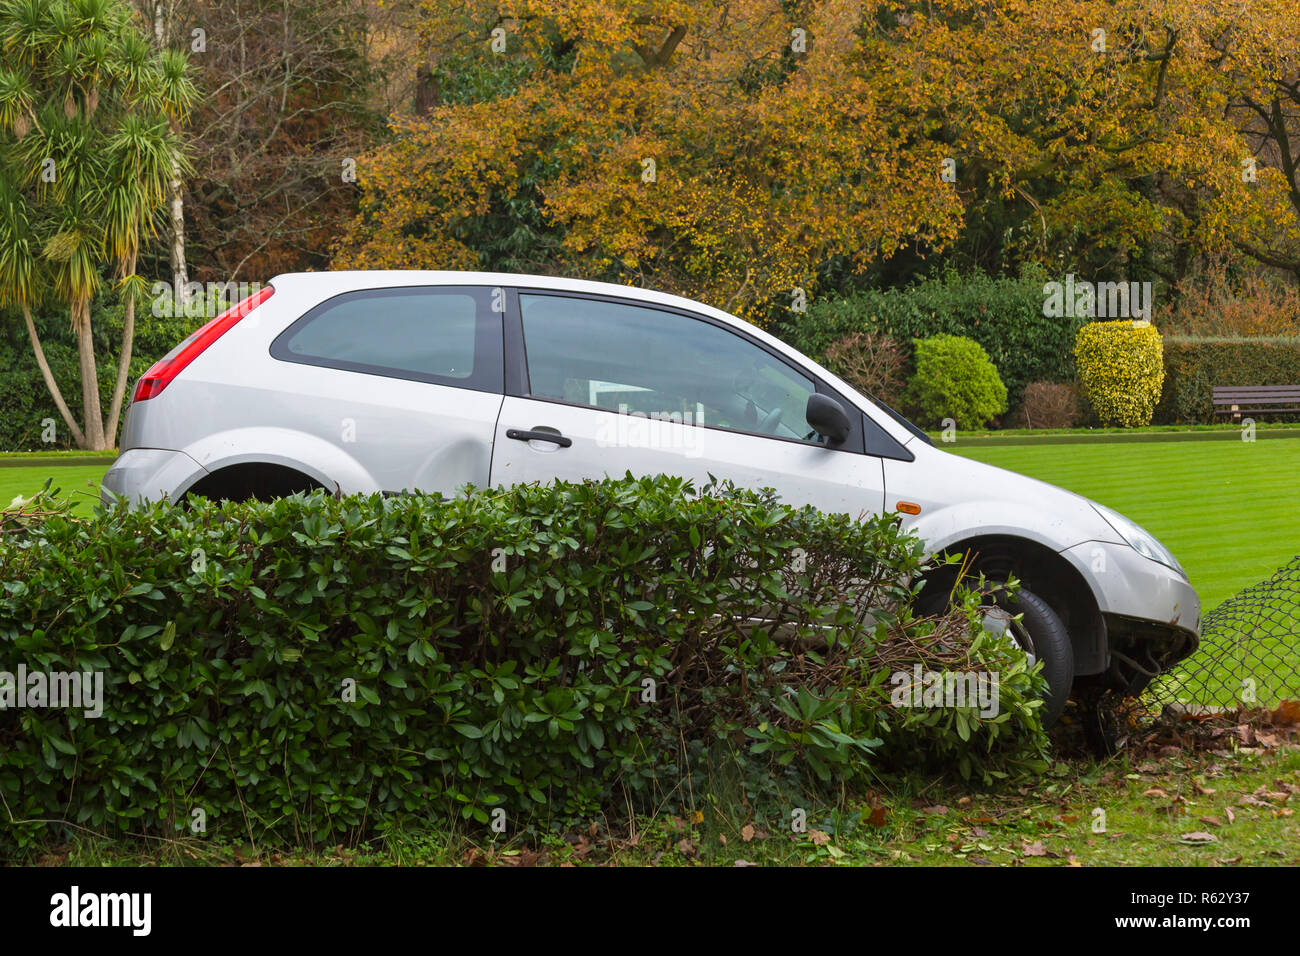 Poole, Dorset, UK. 3rd Dec, 2018. A bad bit of parking at Poole! Ford Fiesta Finesse silver car ends up on by hedge damaging fence. Credit: Carolyn Jenkins/Alamy Live News - Stock Image